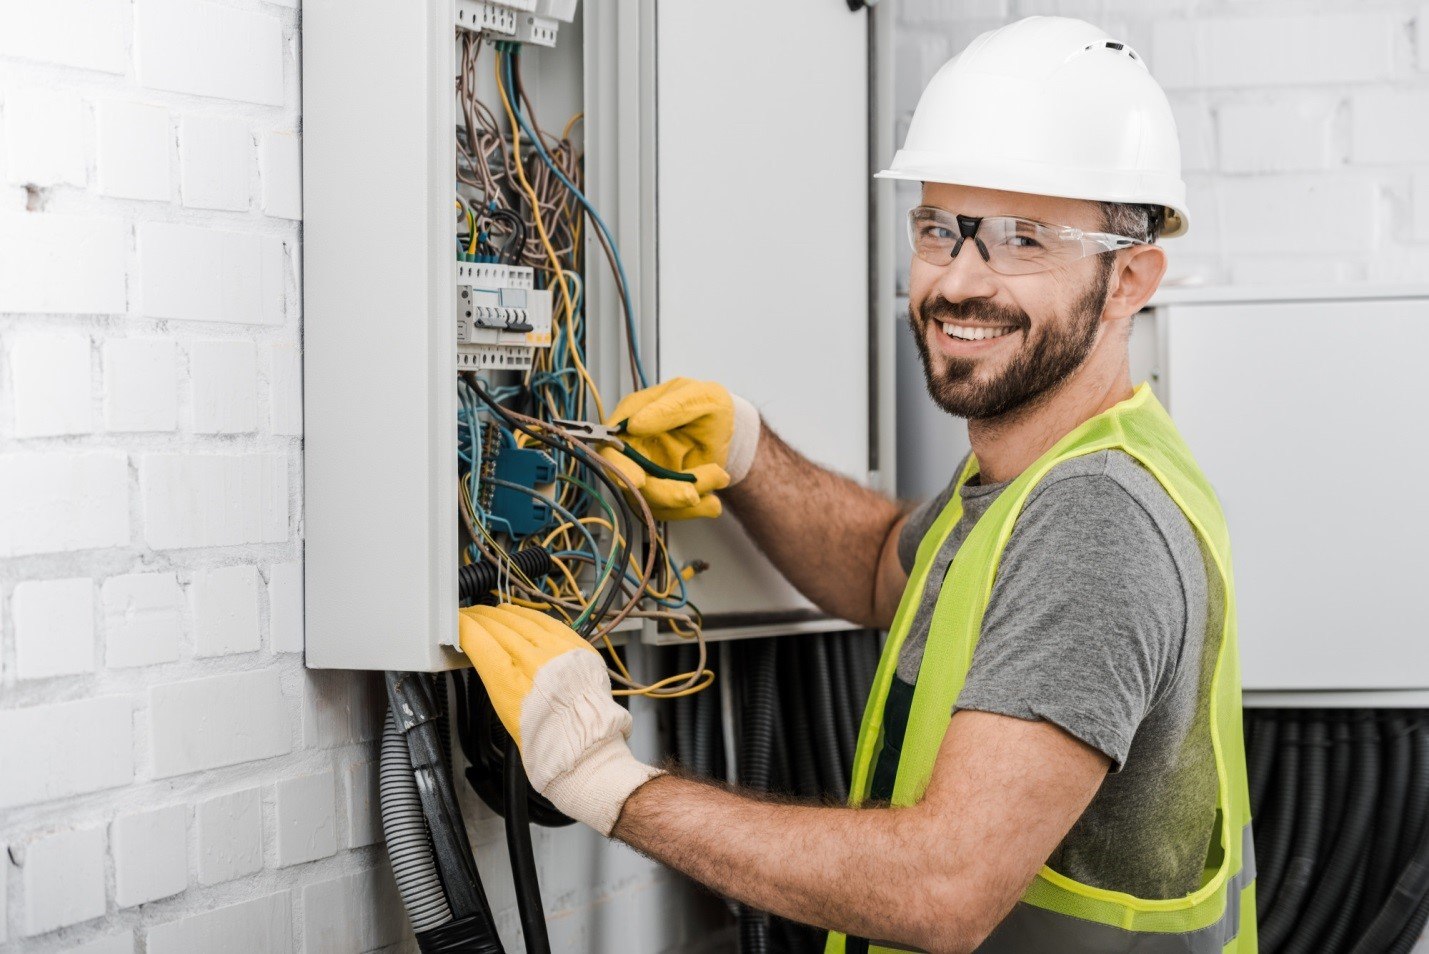 image - How Much Does It Cost to Hire an Electrician Per Hour